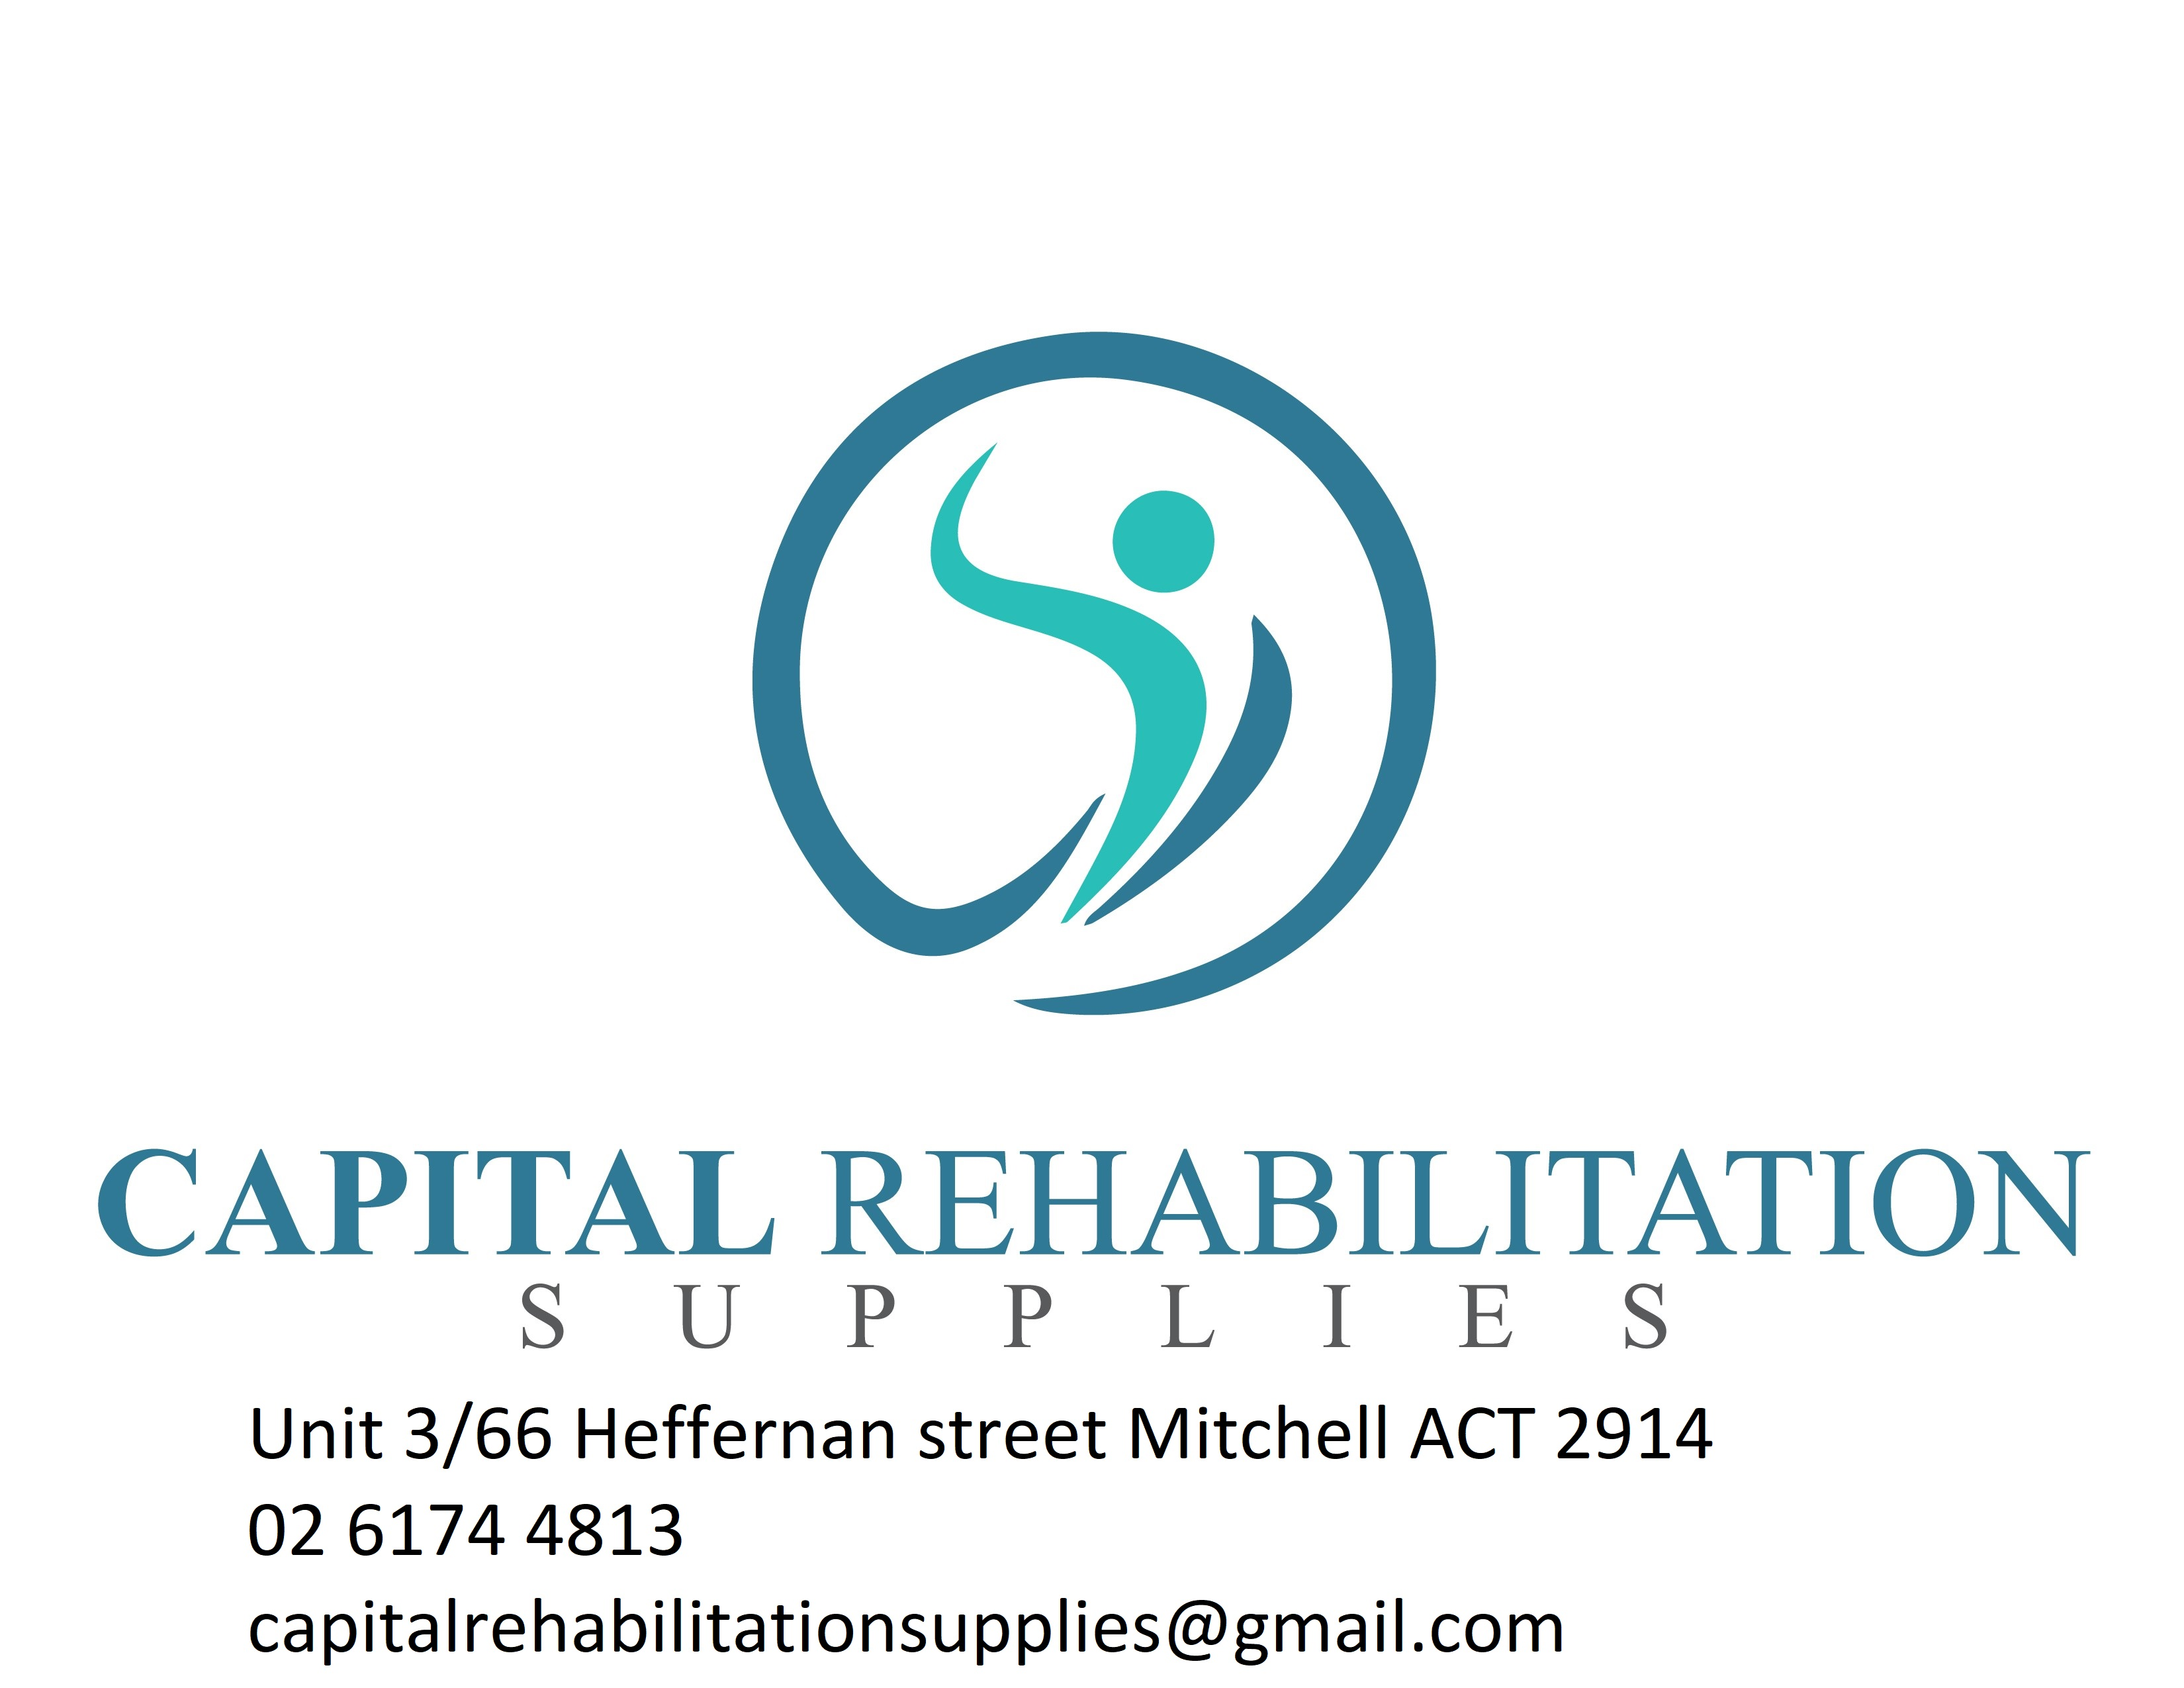 'Capital Rehabilitation Supplies, bring rehabilitation to the nation""